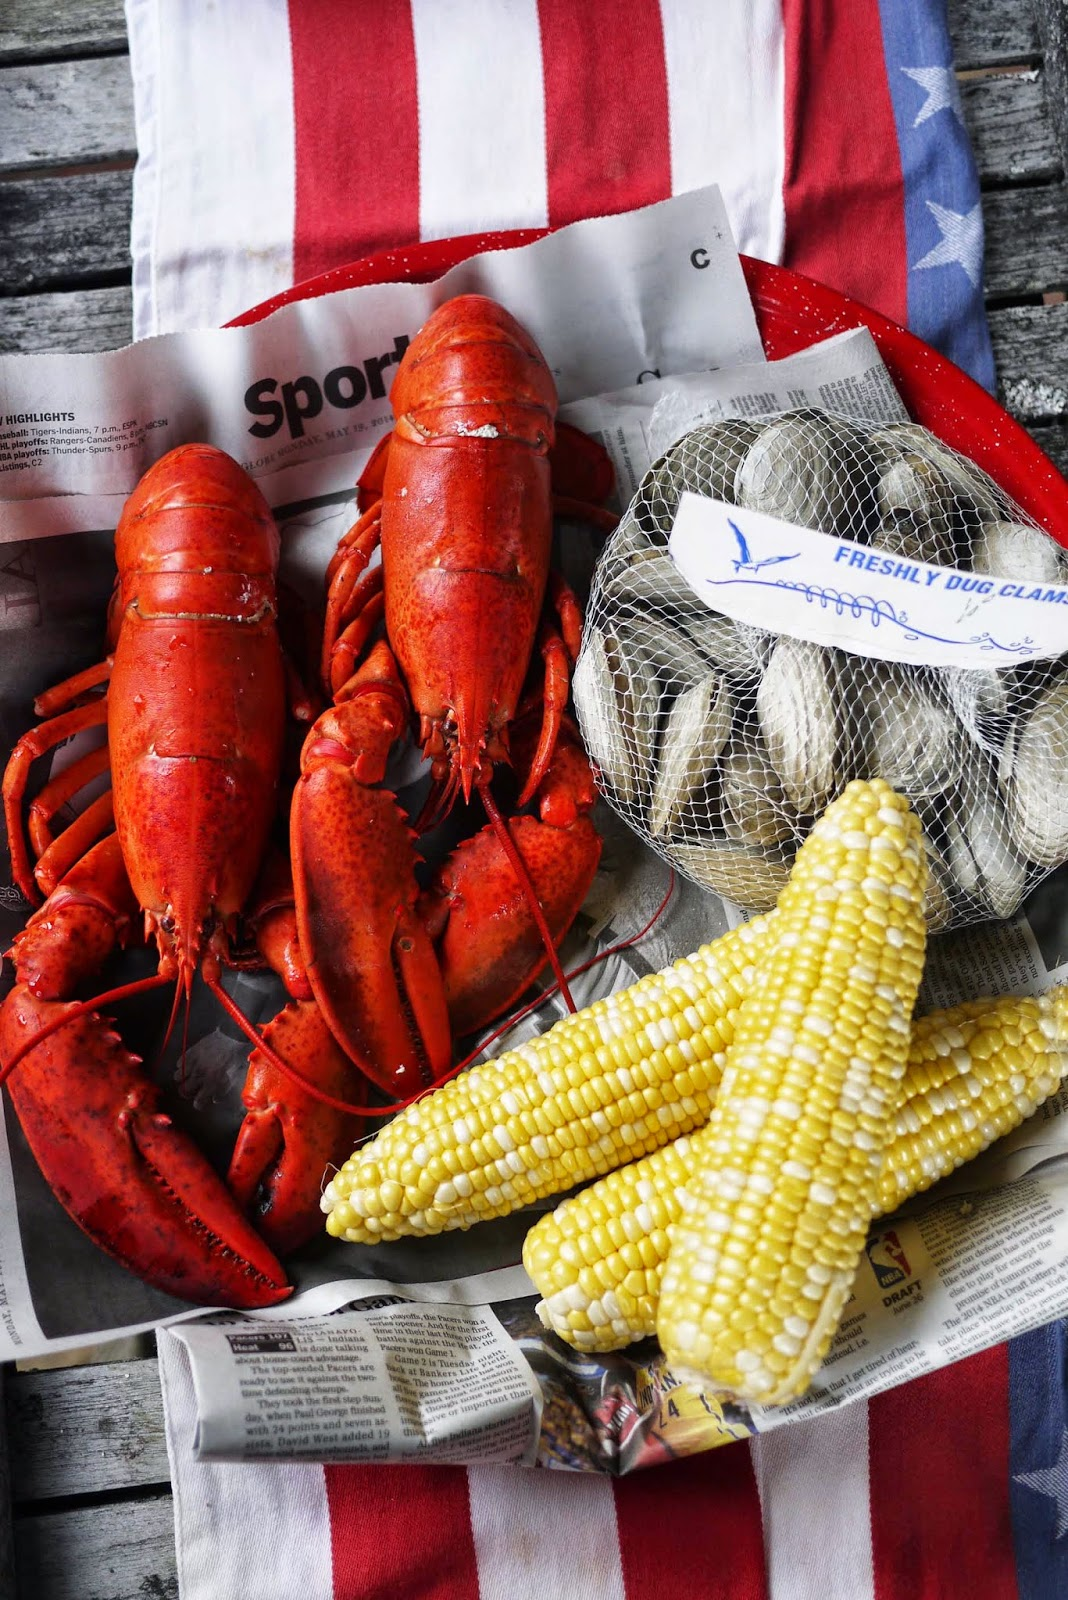 Comment Ranger Ma Cuisine new england lobster roll recipe - the buggy blog